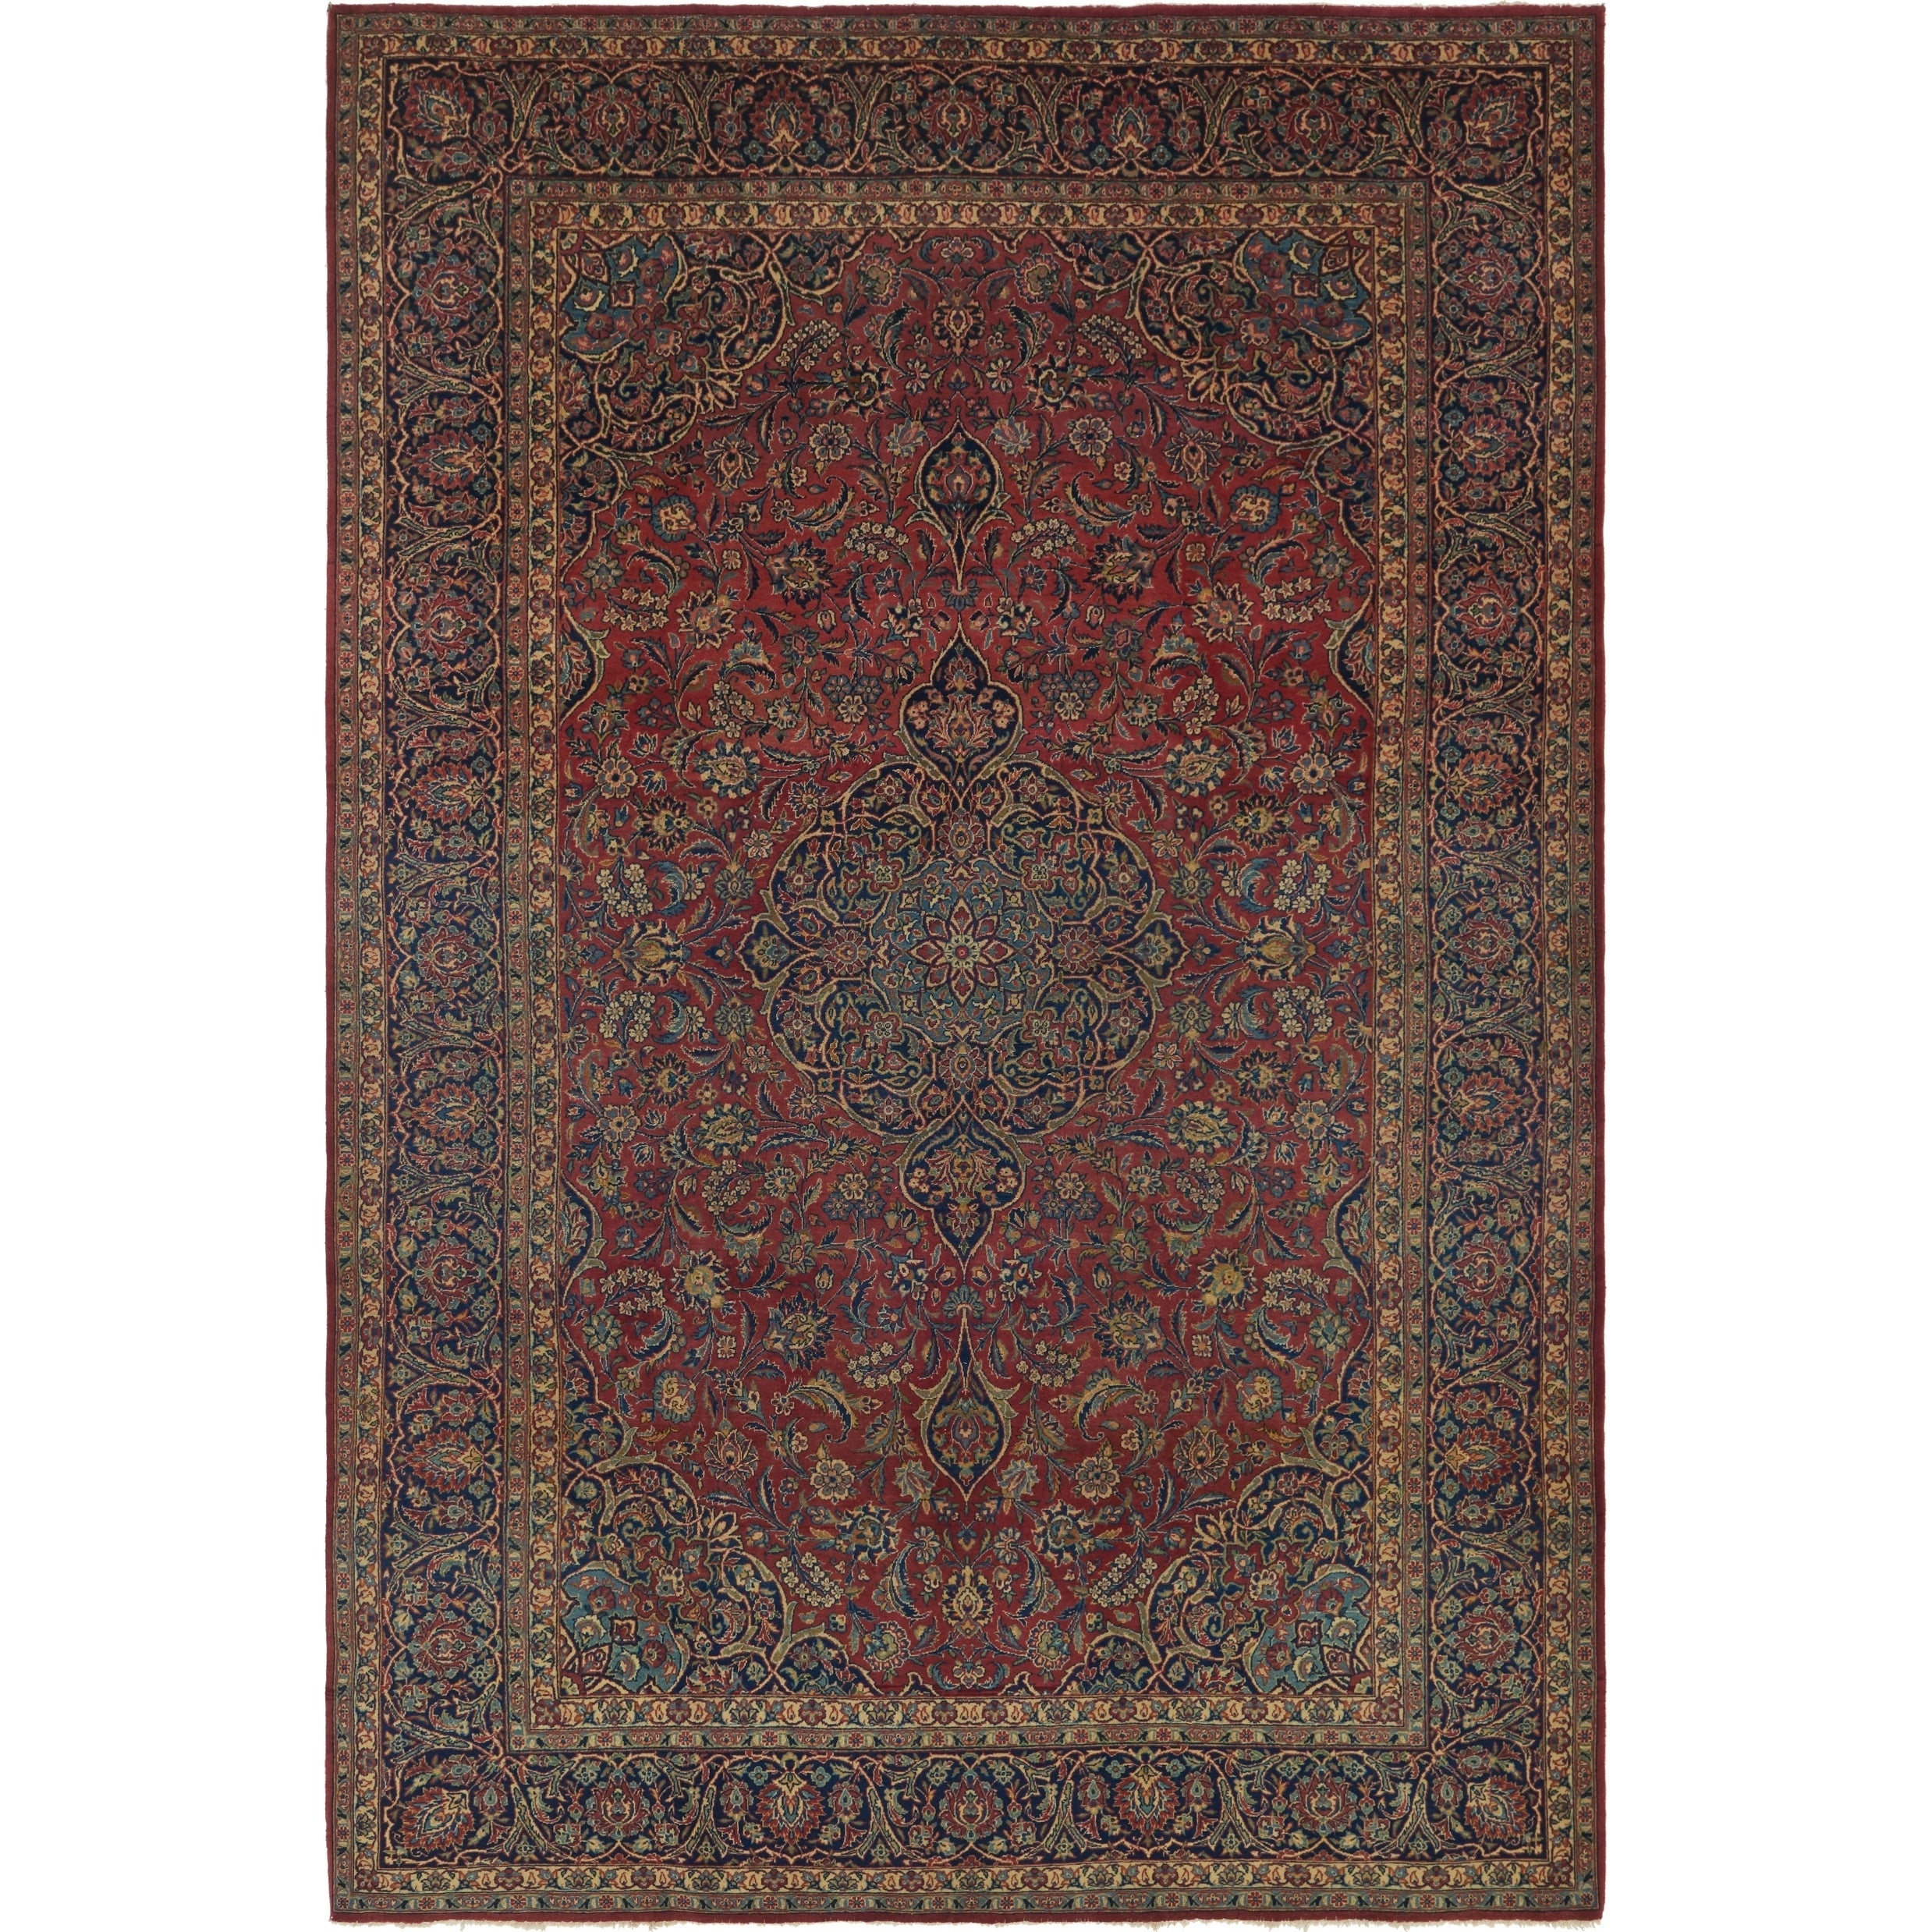 Hand Knotted Kashan Antique Wool Area Rug - 7 x 10 10 (Red - 7 x 10 10)